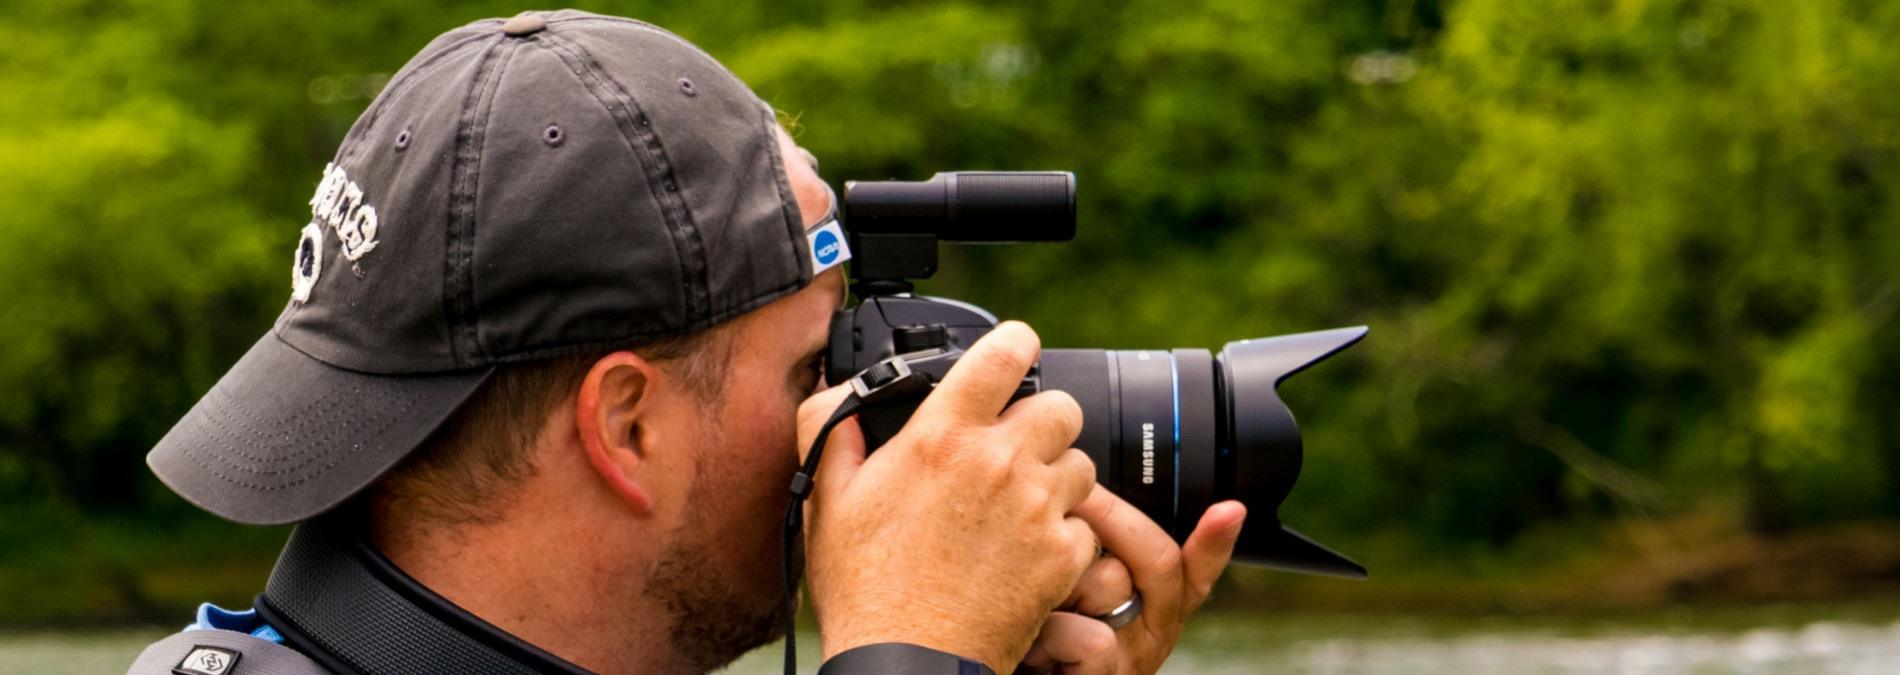 New Photographers: 8 Reasons Your Camera Should Go Everywhere You...